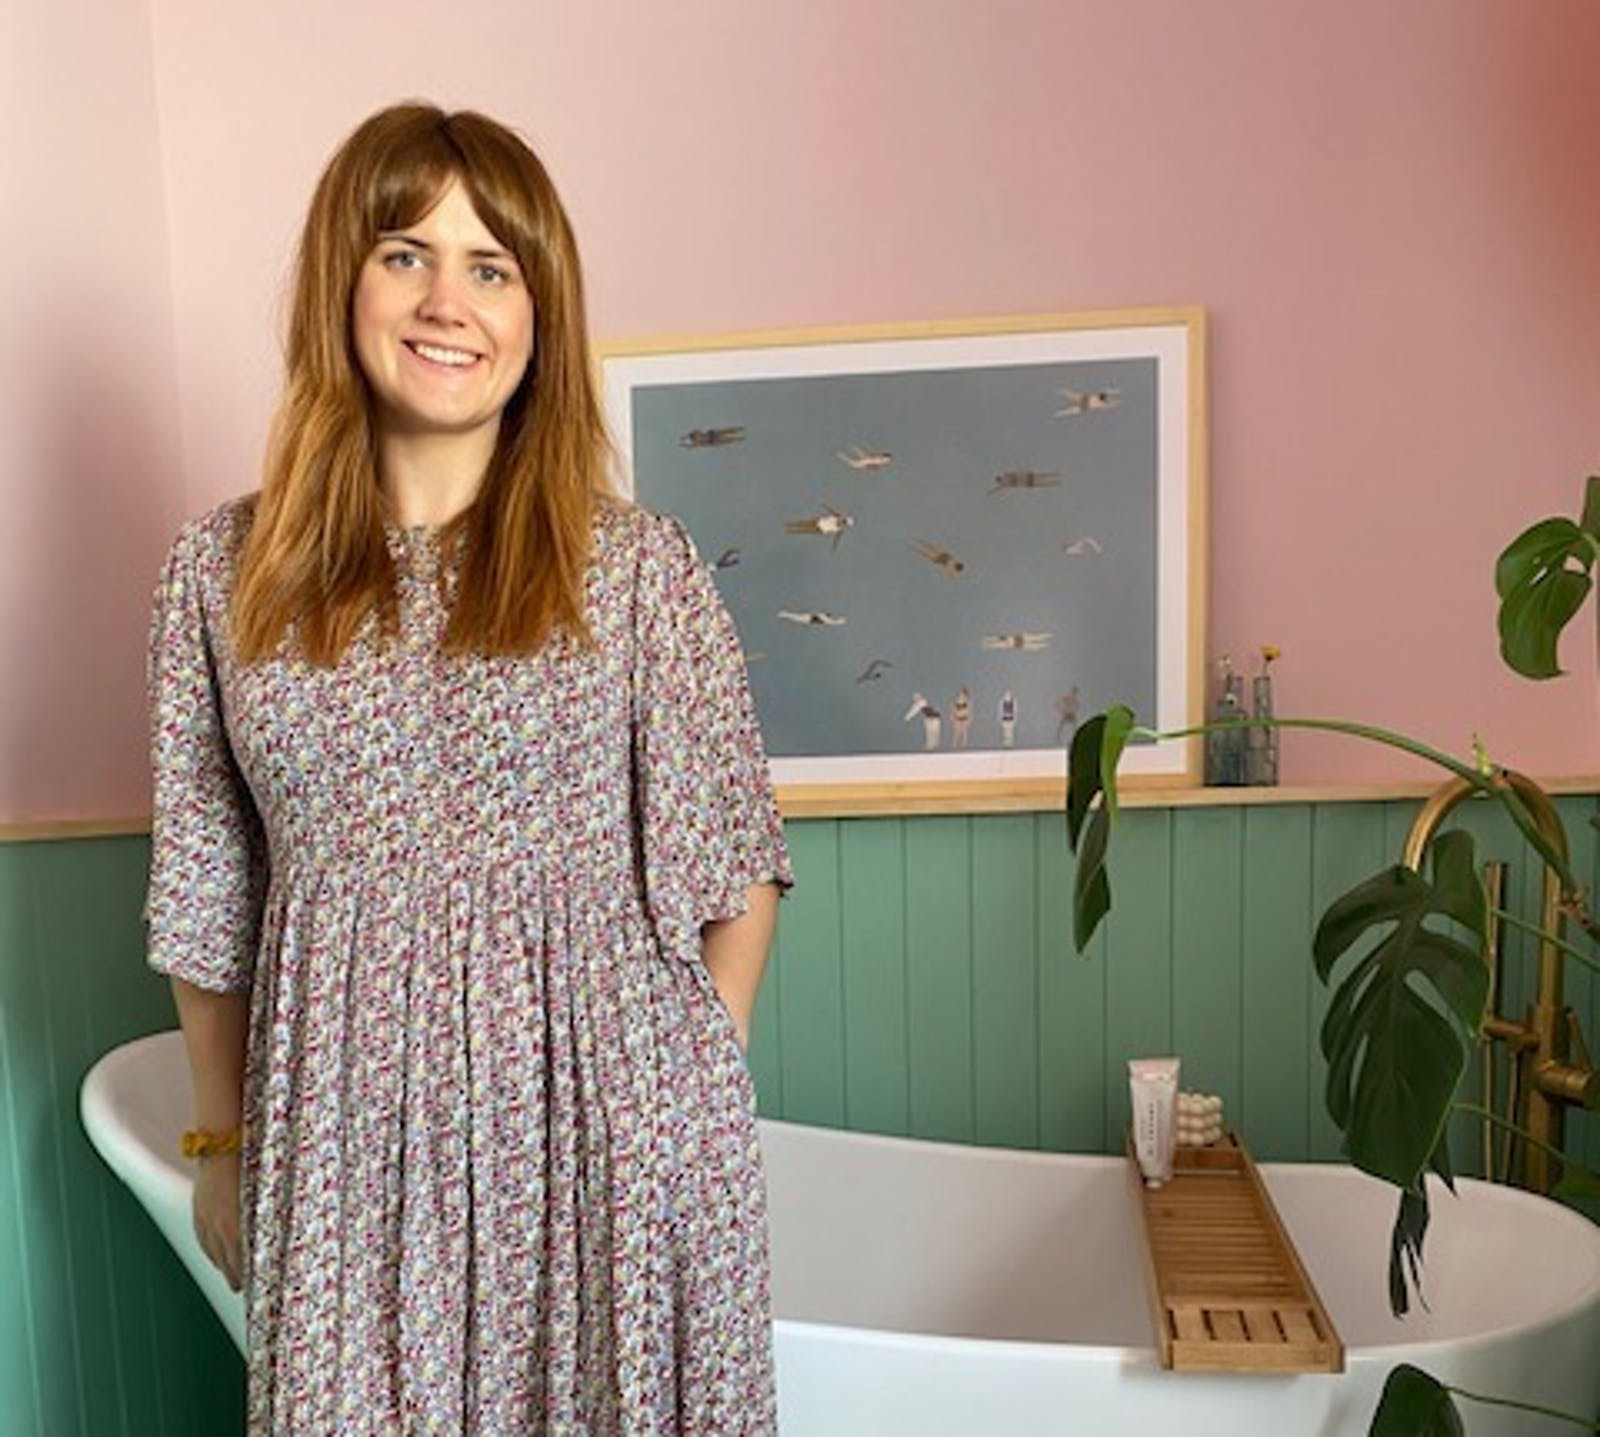 Brunette woman standing in front of bathtub in a pink and green bathroom, painted using Lick paints